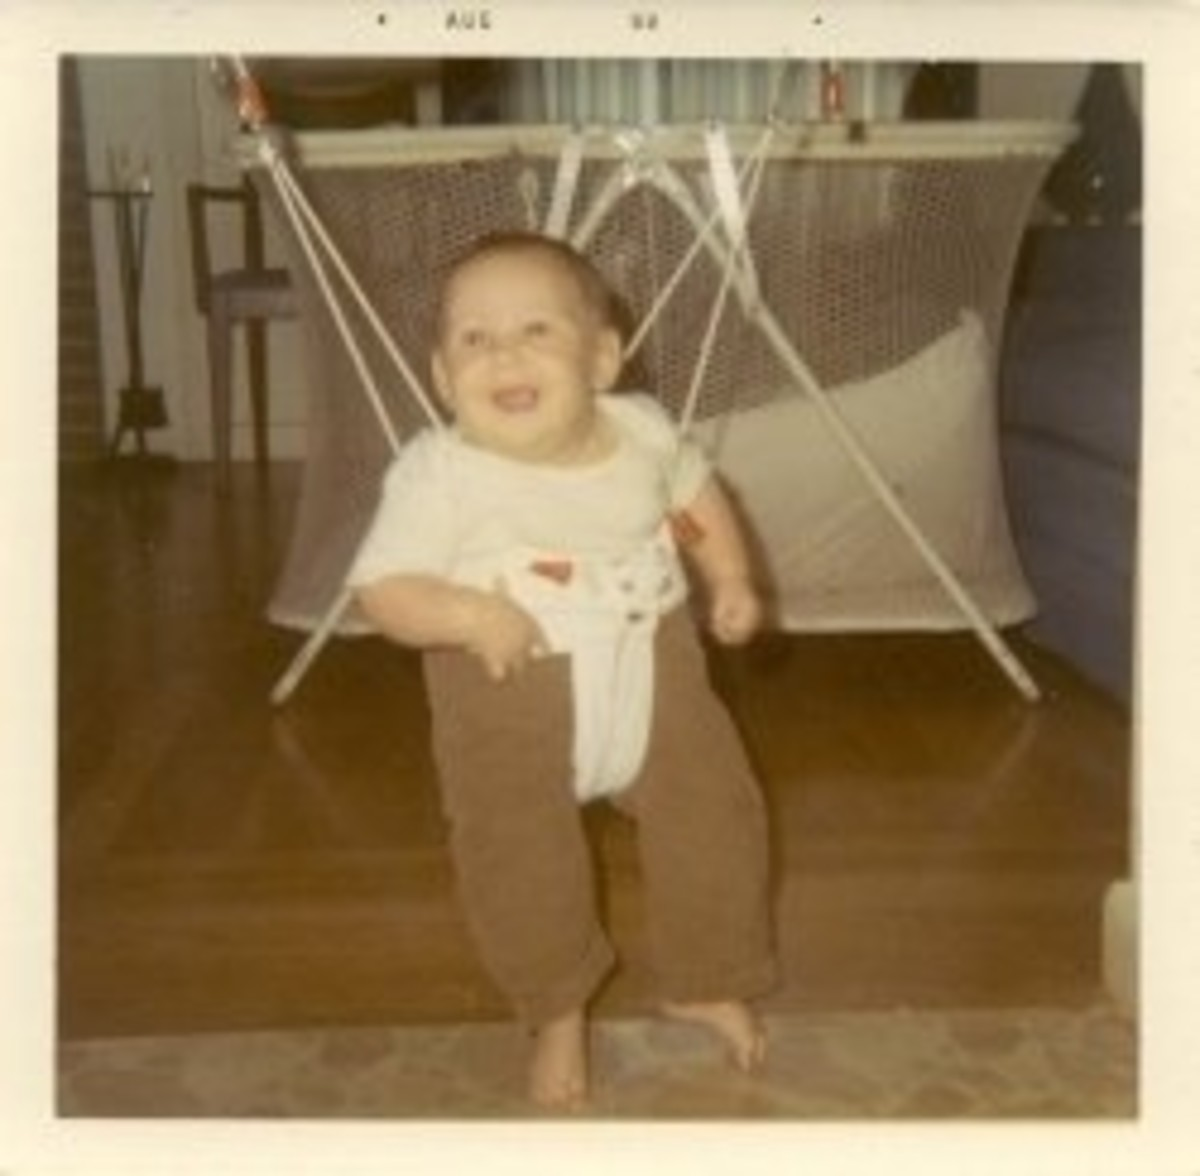 Me, sometime in 1969